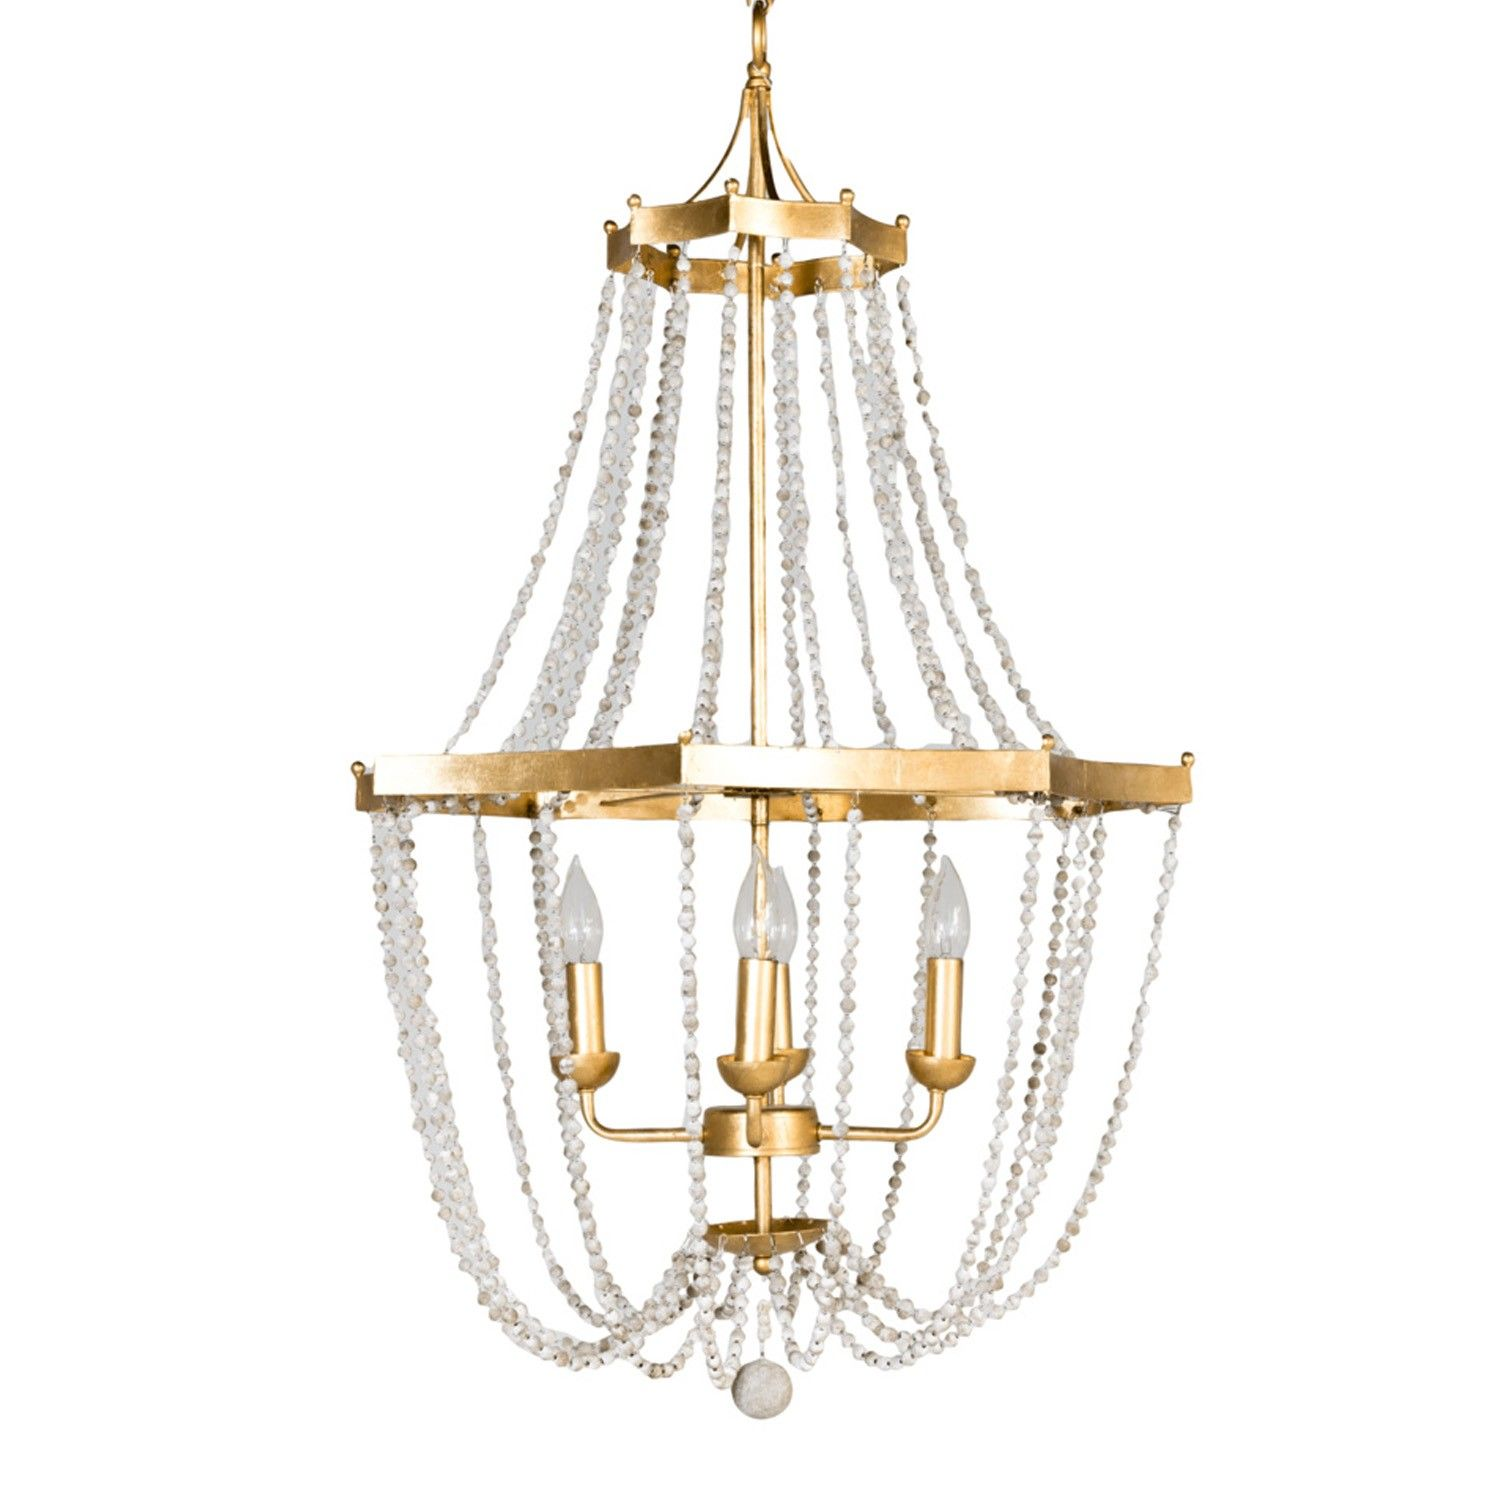 Whitney chandelier in gold by gabby materials metal wooden whitney chandelier in gold by gabby materials metal wooden beads finish vintage mozeypictures Images